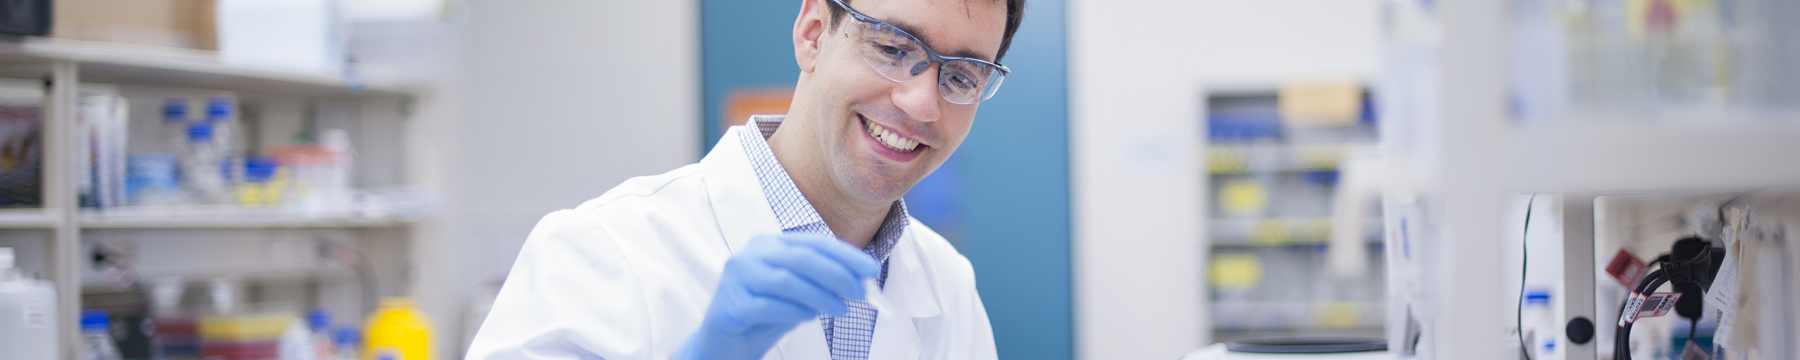 Scientist looking at sample in lab sitting at bench